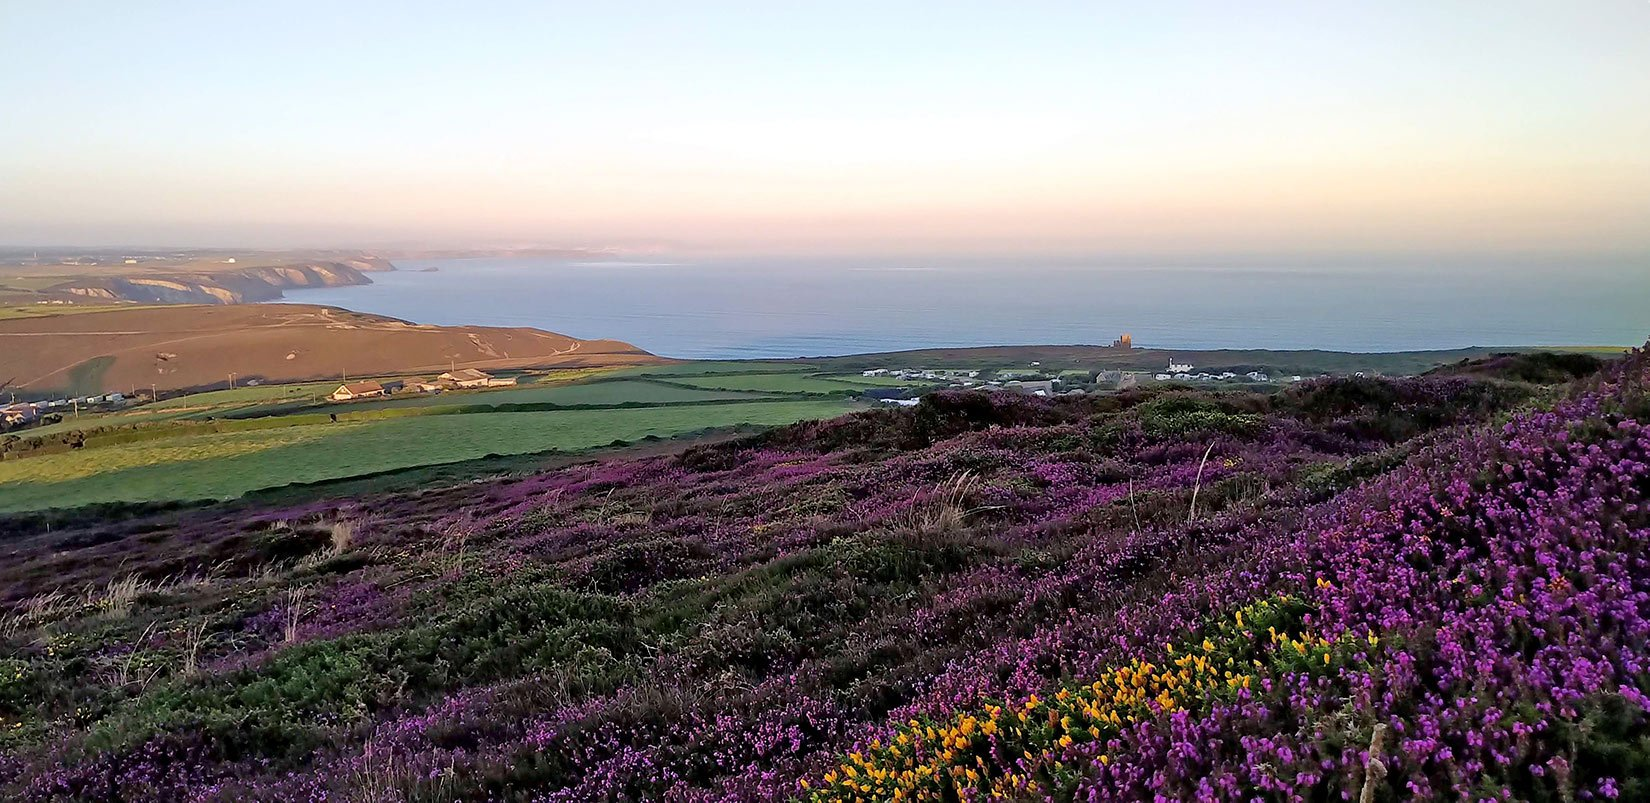 A view across heather to the sea before the day heats up